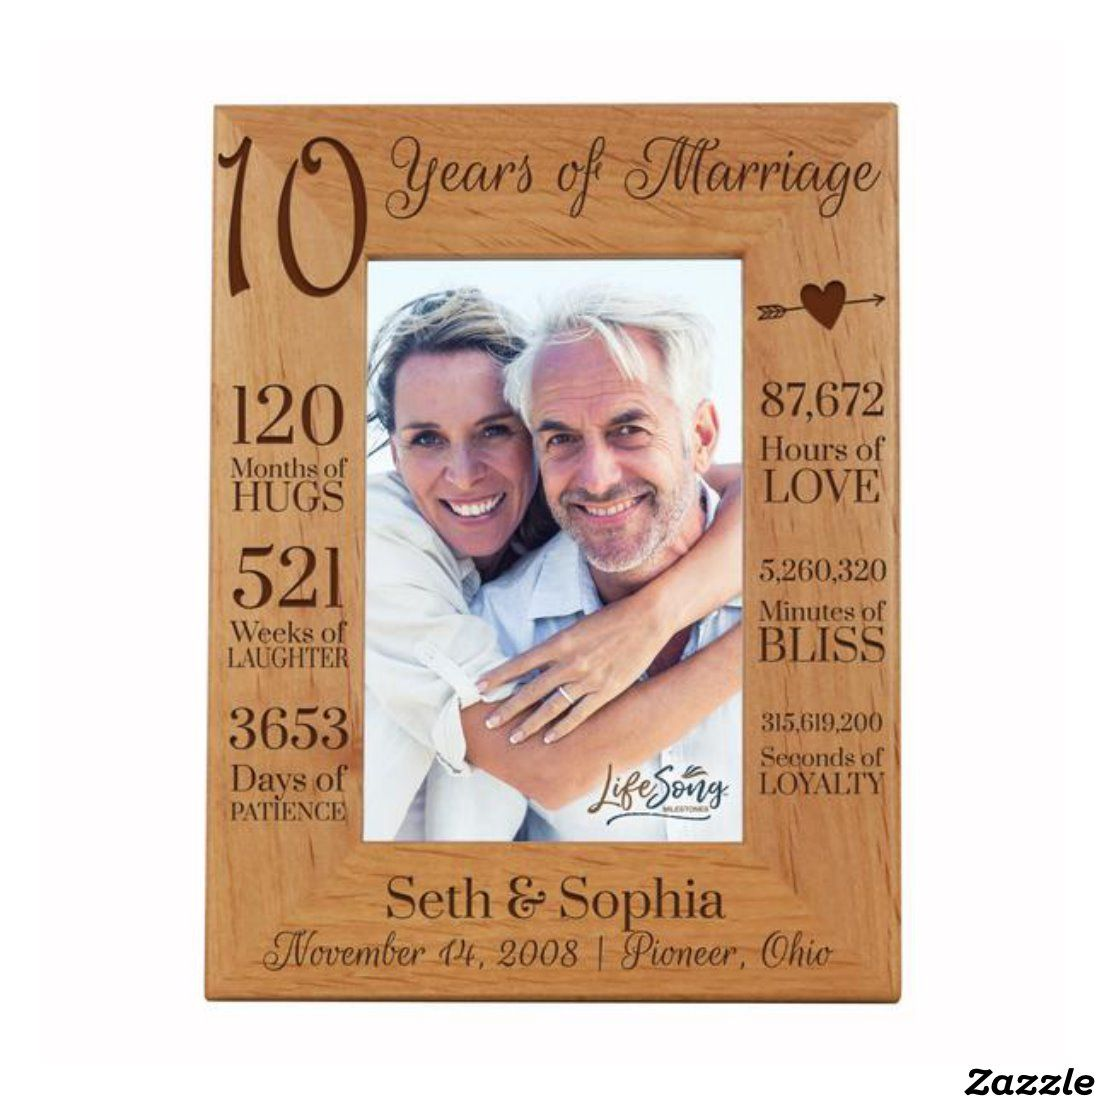 120 Months Of Hugs 10th Anniversary Picture Frame Zazzle Com In 2020 Anniversary Pictures 10 Year Anniversary Gift Anniversary Frame